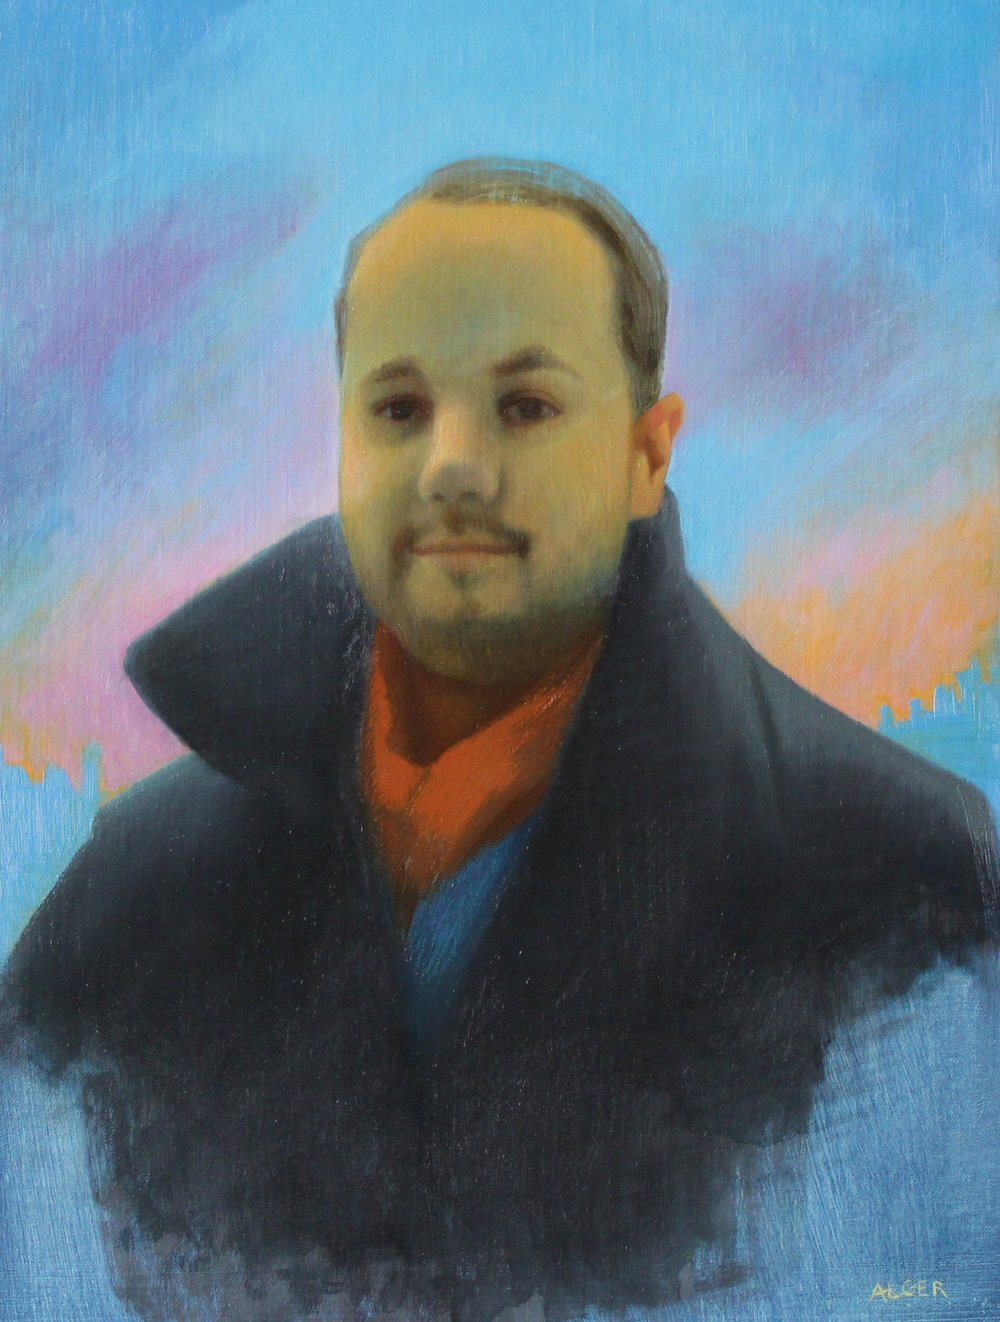 Portrait of Jason John by Nicole Alger